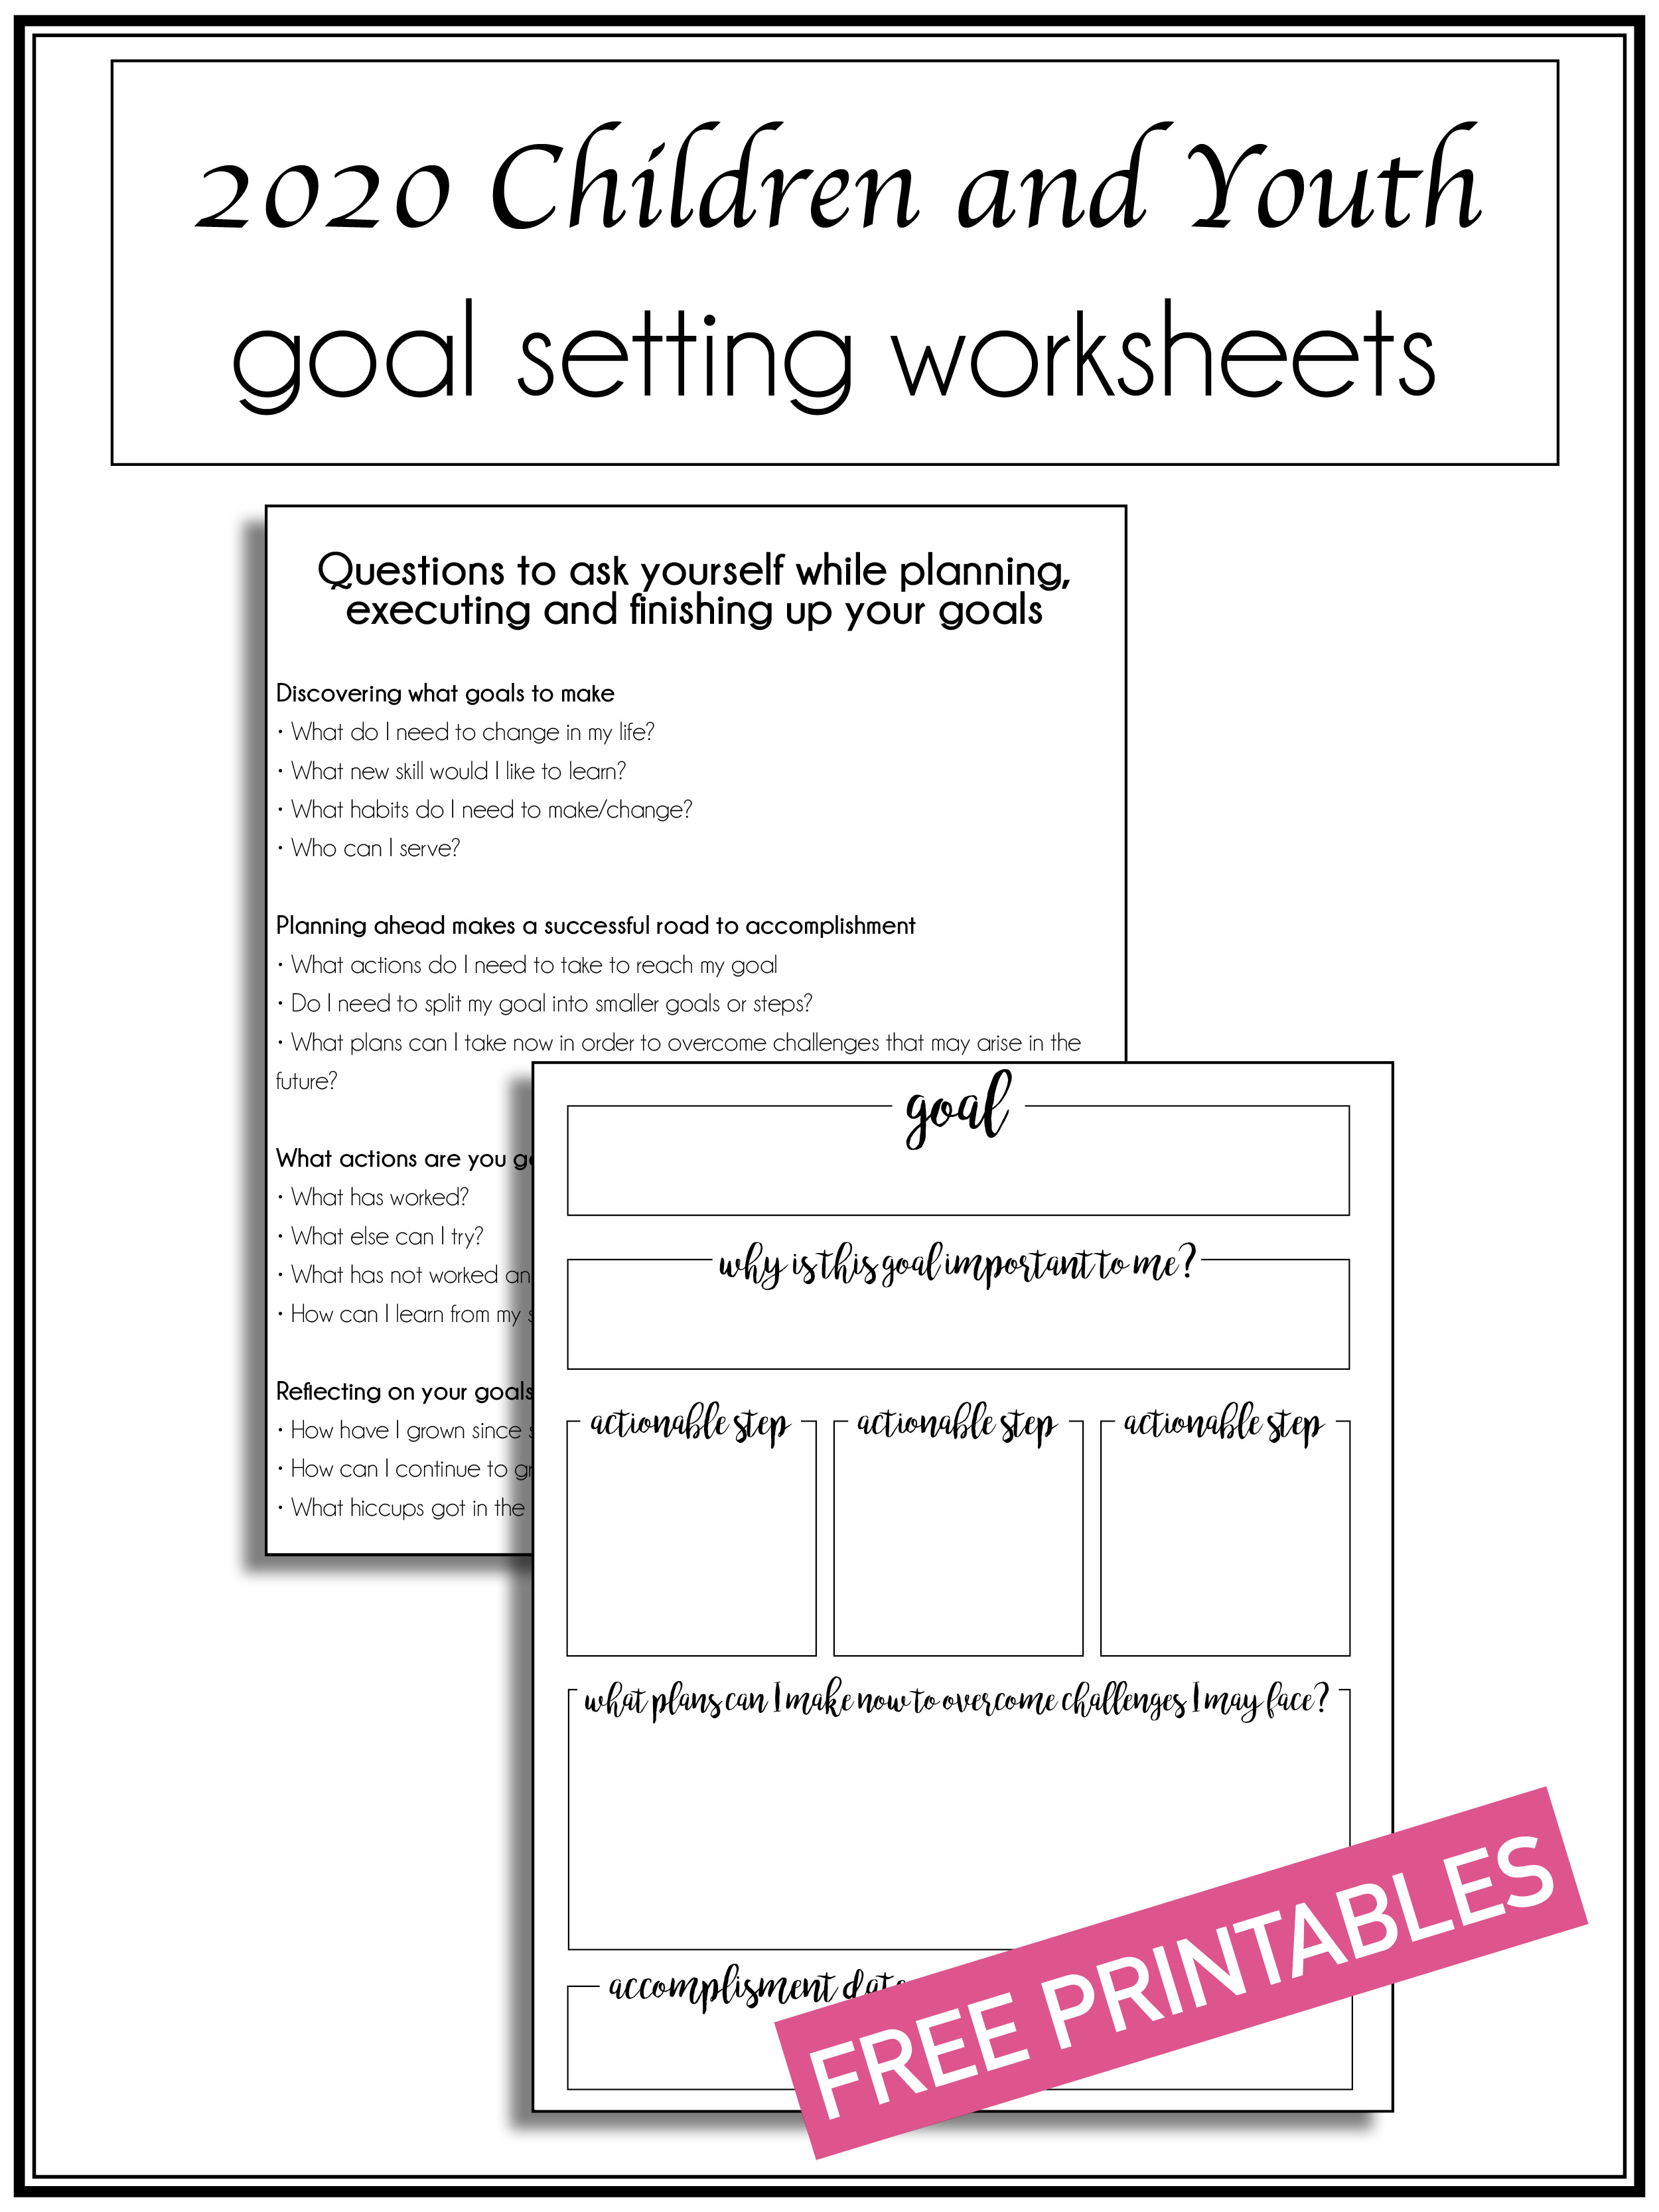 Goal Worksheets Pinterest